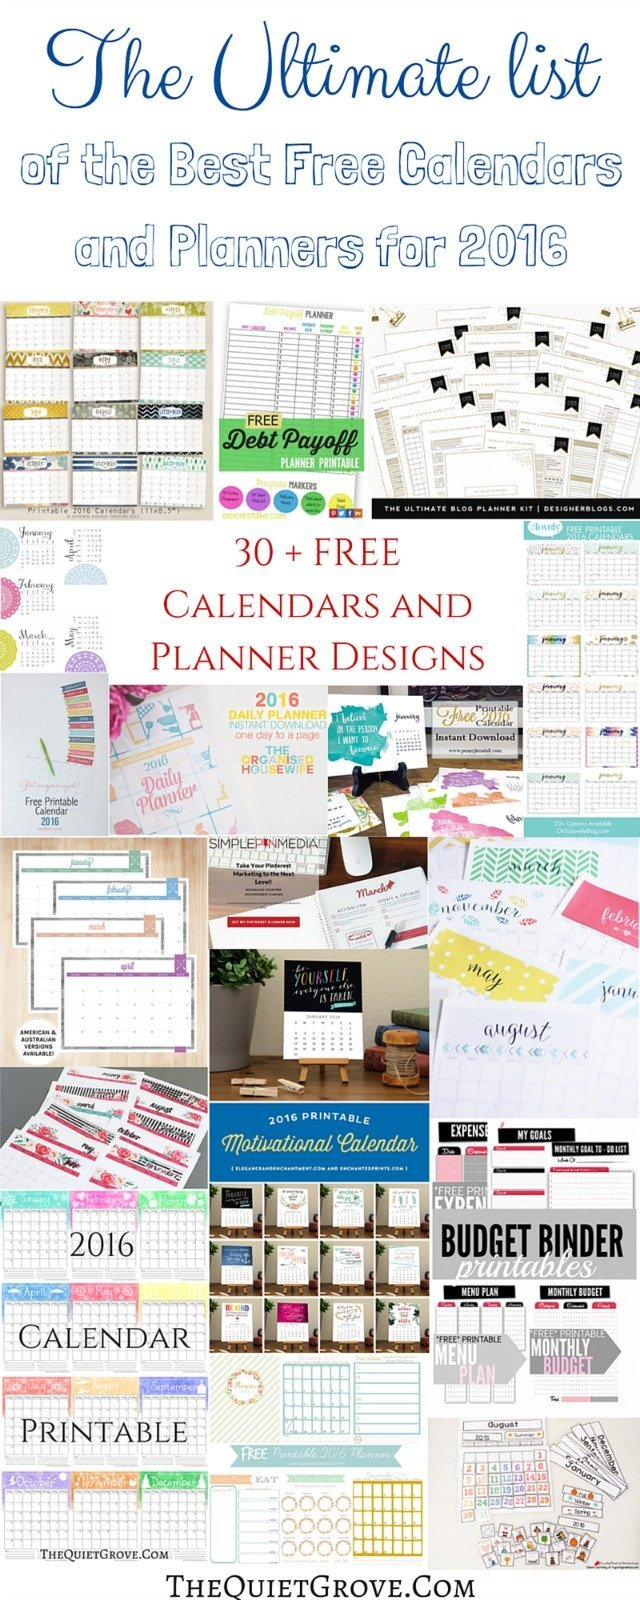 The Ultimate list of the Best Free Calendars and Planners for 2016